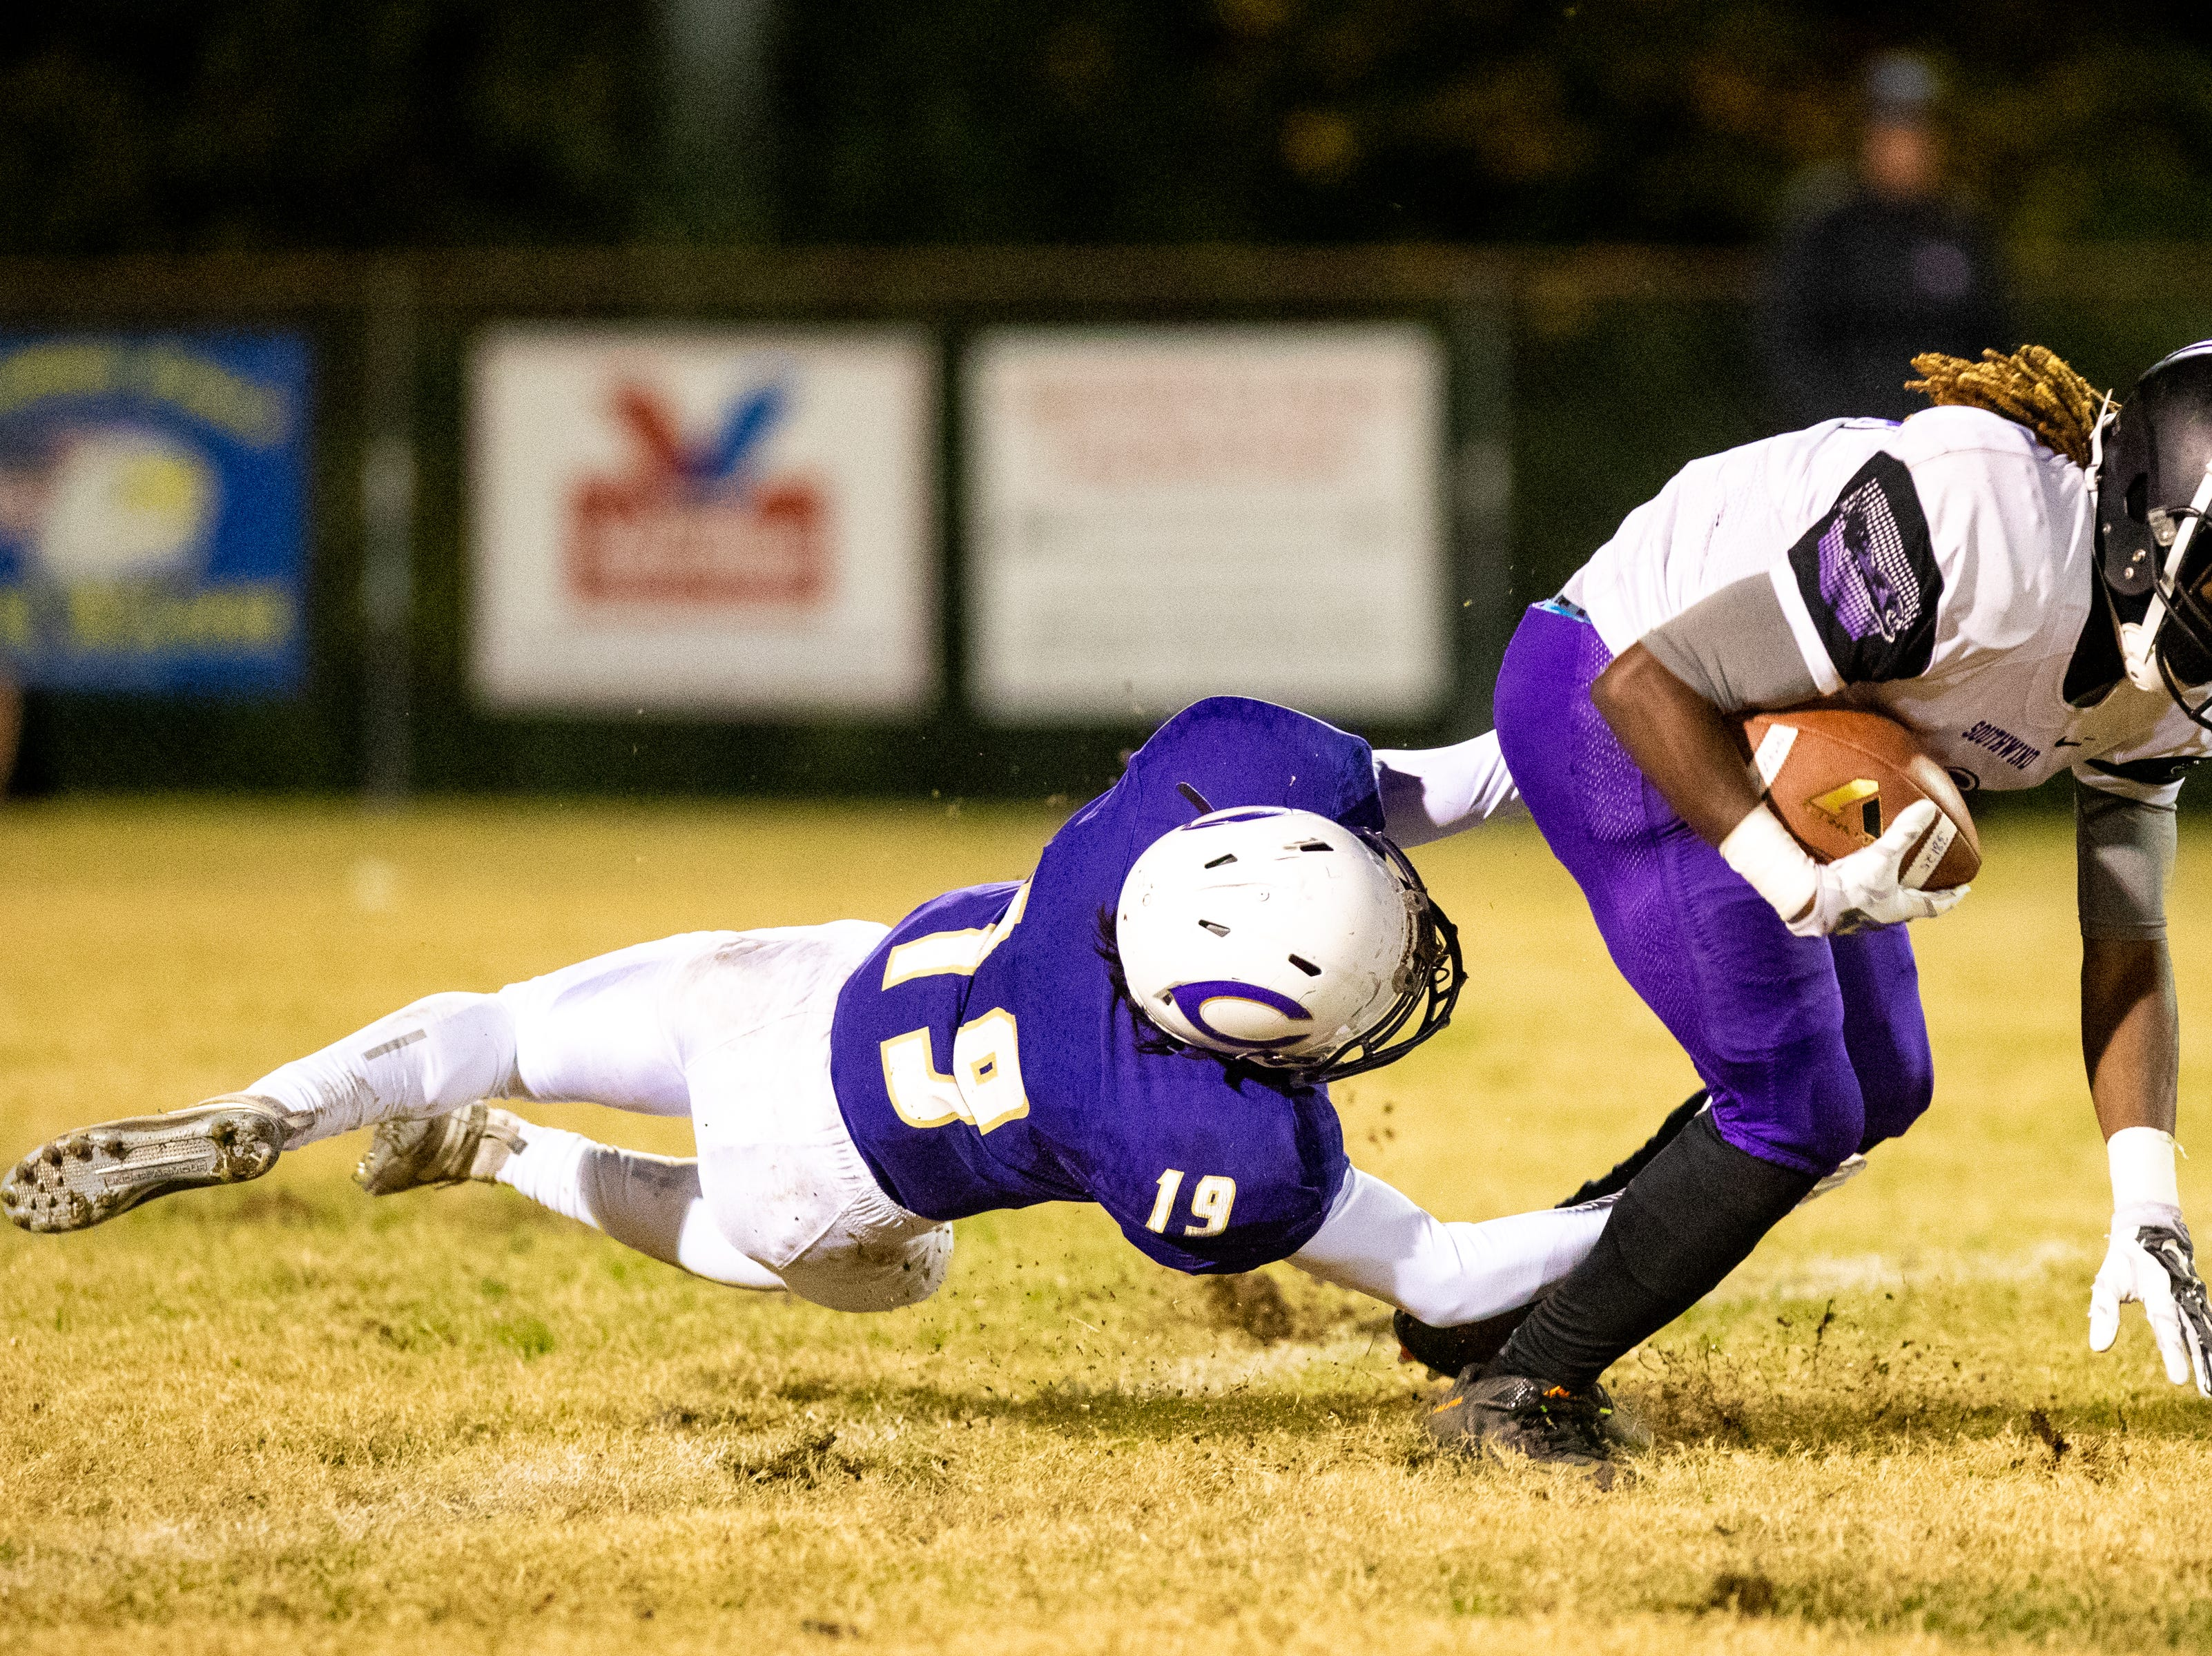 Lakavius Summers (2) of Southwind is tackled by Ethan Ponder (19) of Clarksville High during the first half at Clarksville High Friday, Nov. 2, 2018, in Clarksville, Tenn.